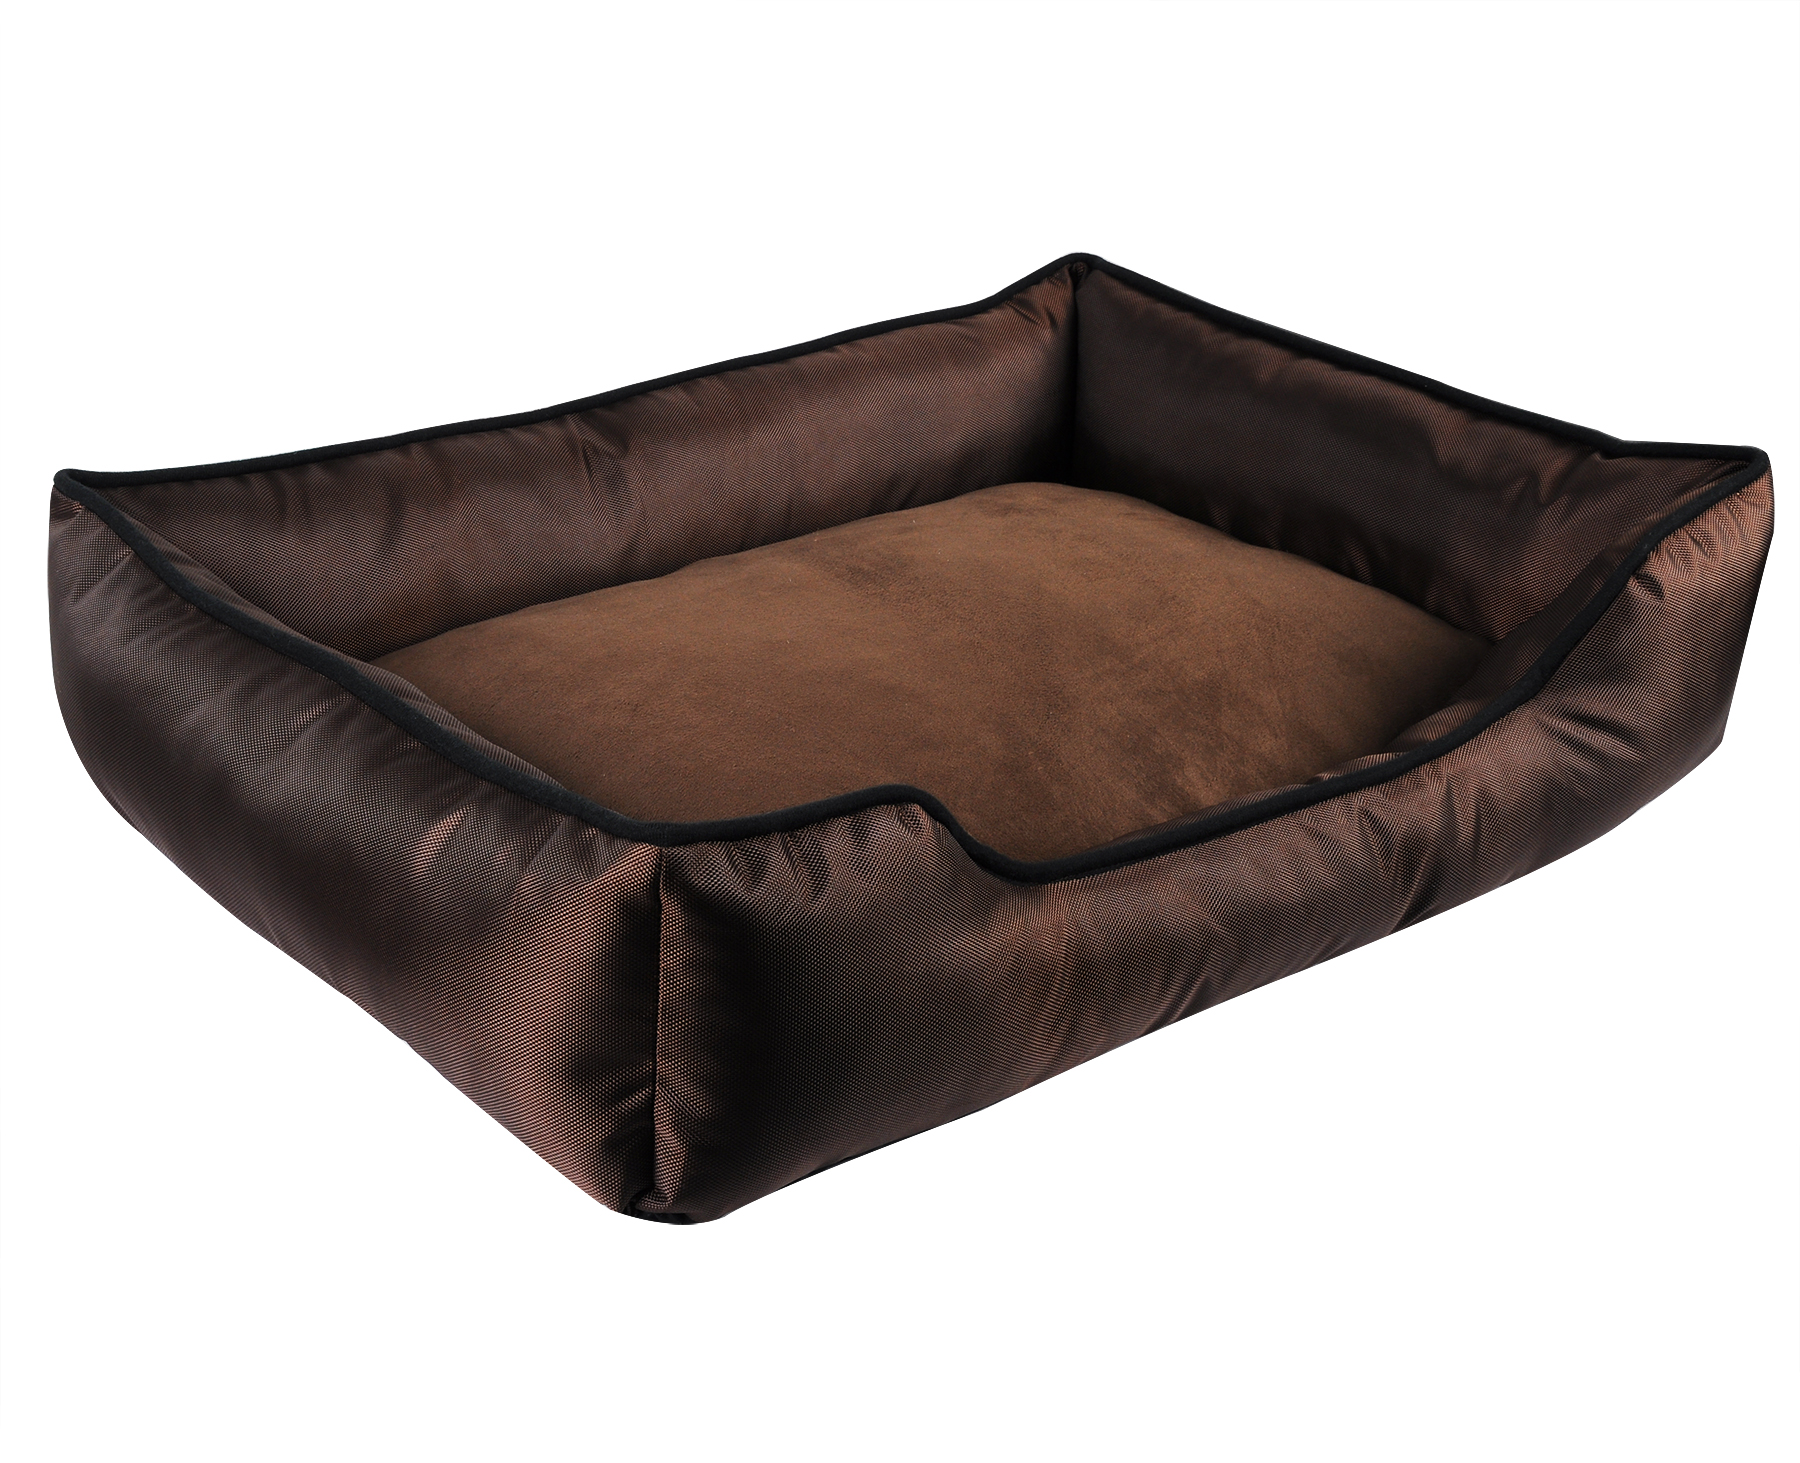 lit pour chien canap coussin panier animal brun xl xxl xxxl 367 ebay. Black Bedroom Furniture Sets. Home Design Ideas